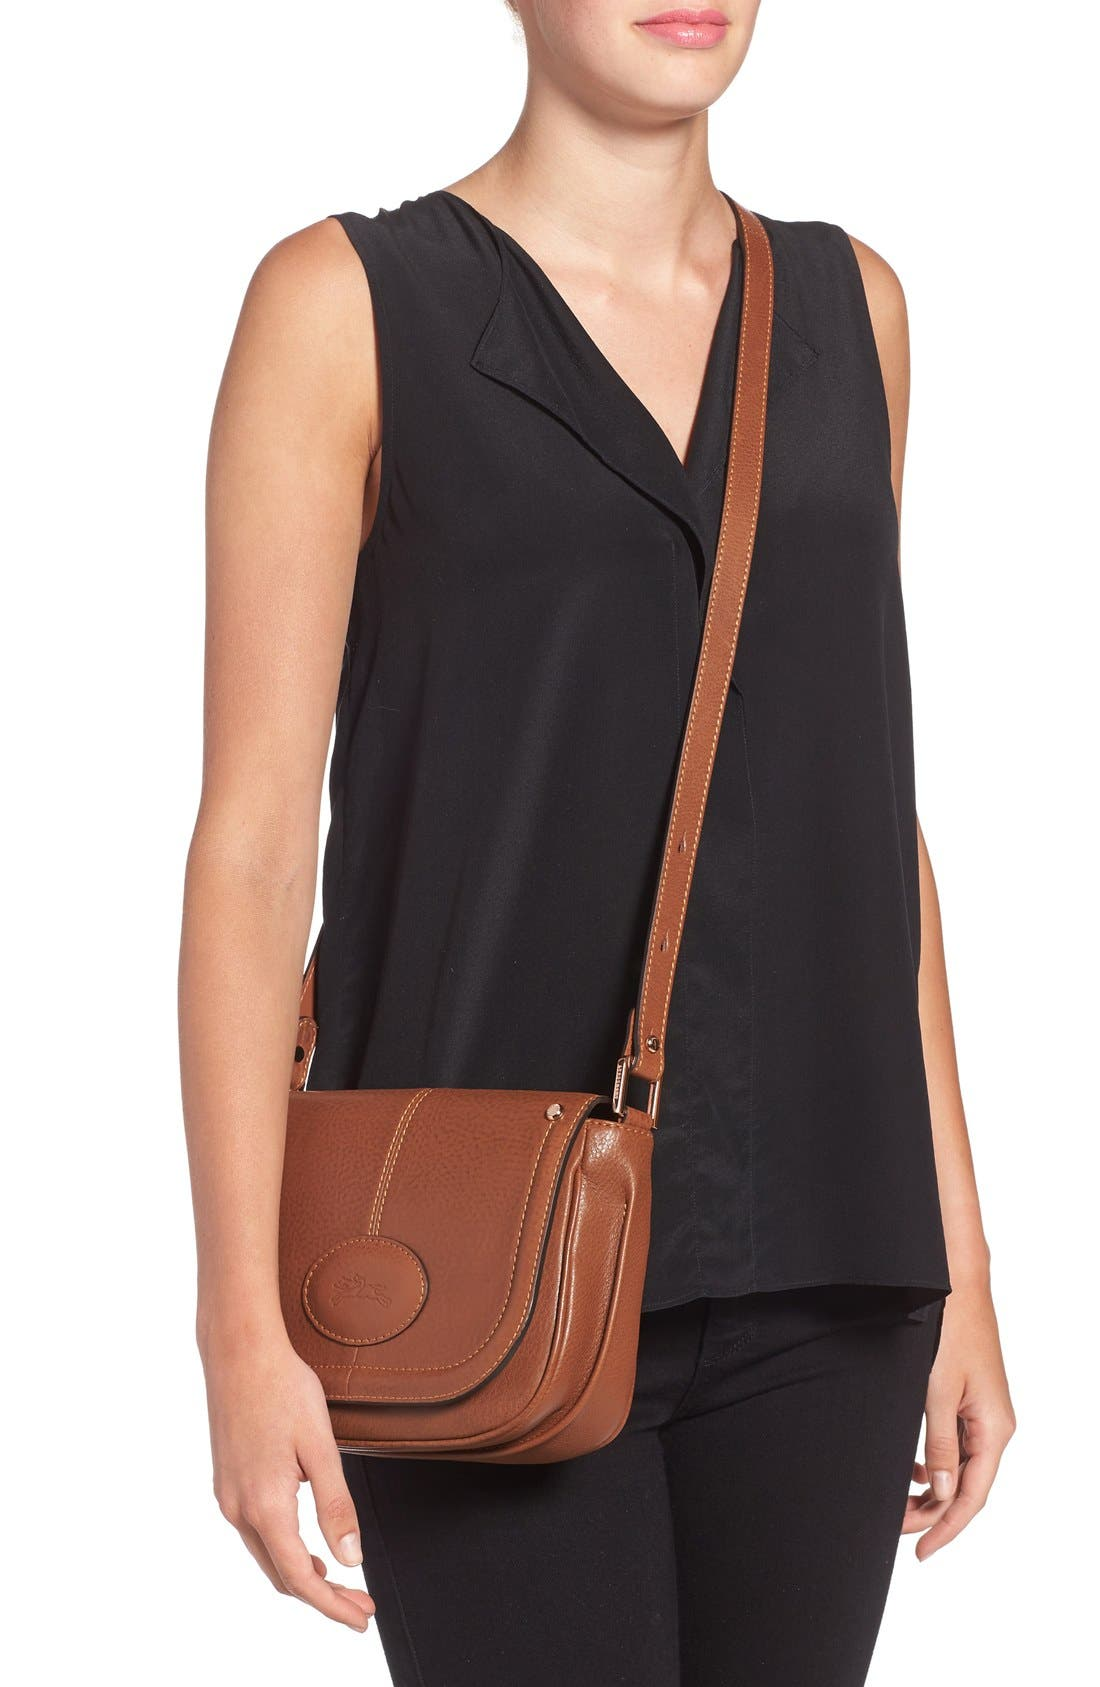 'Small Mystery' Leather Crossbody Bag,                             Alternate thumbnail 3, color,